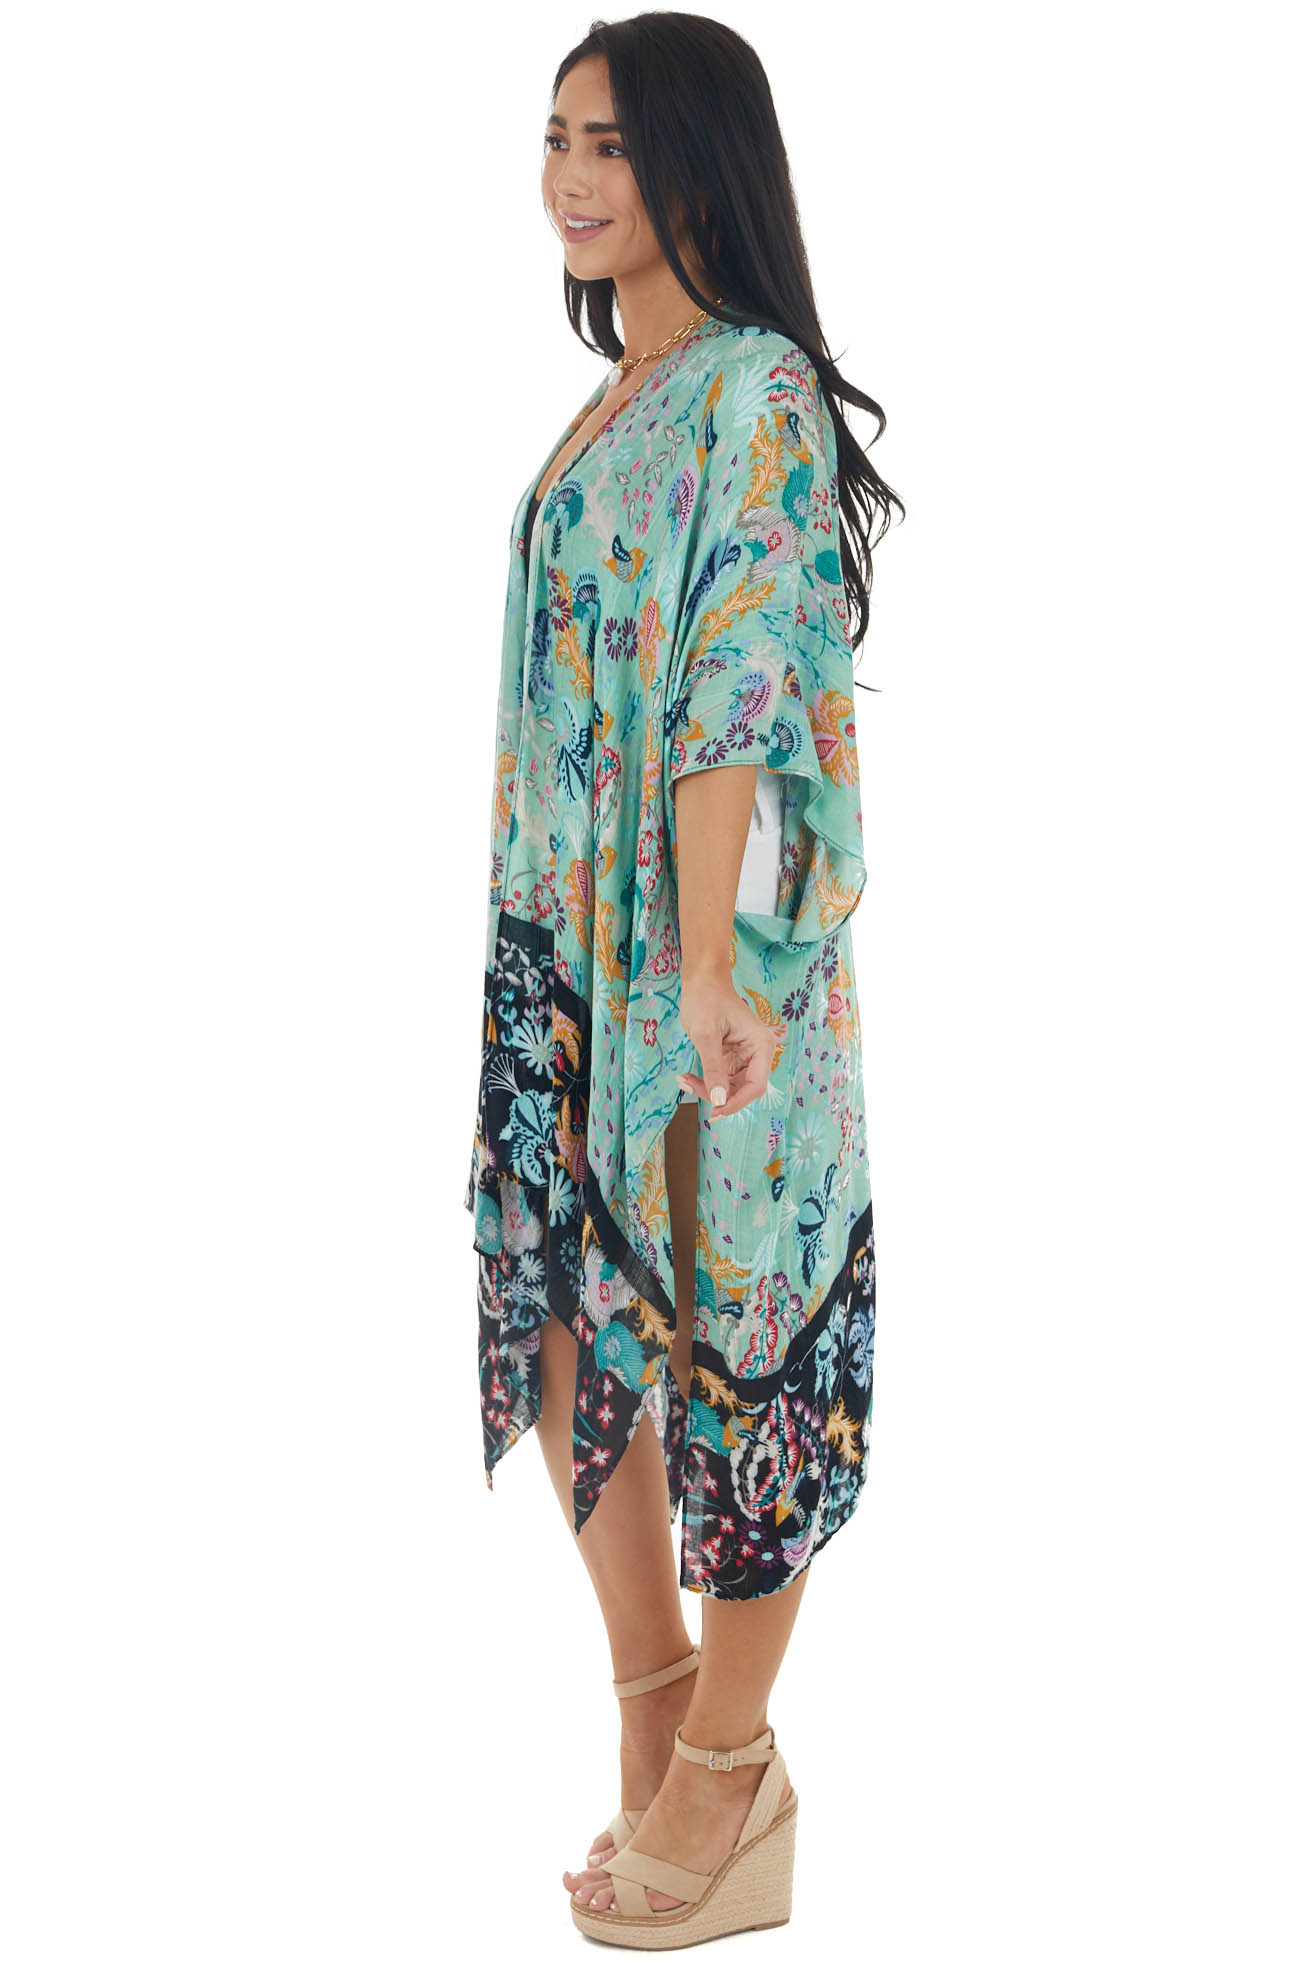 Dark Mint Floral Print Open Front Kimono with Half Sleeves